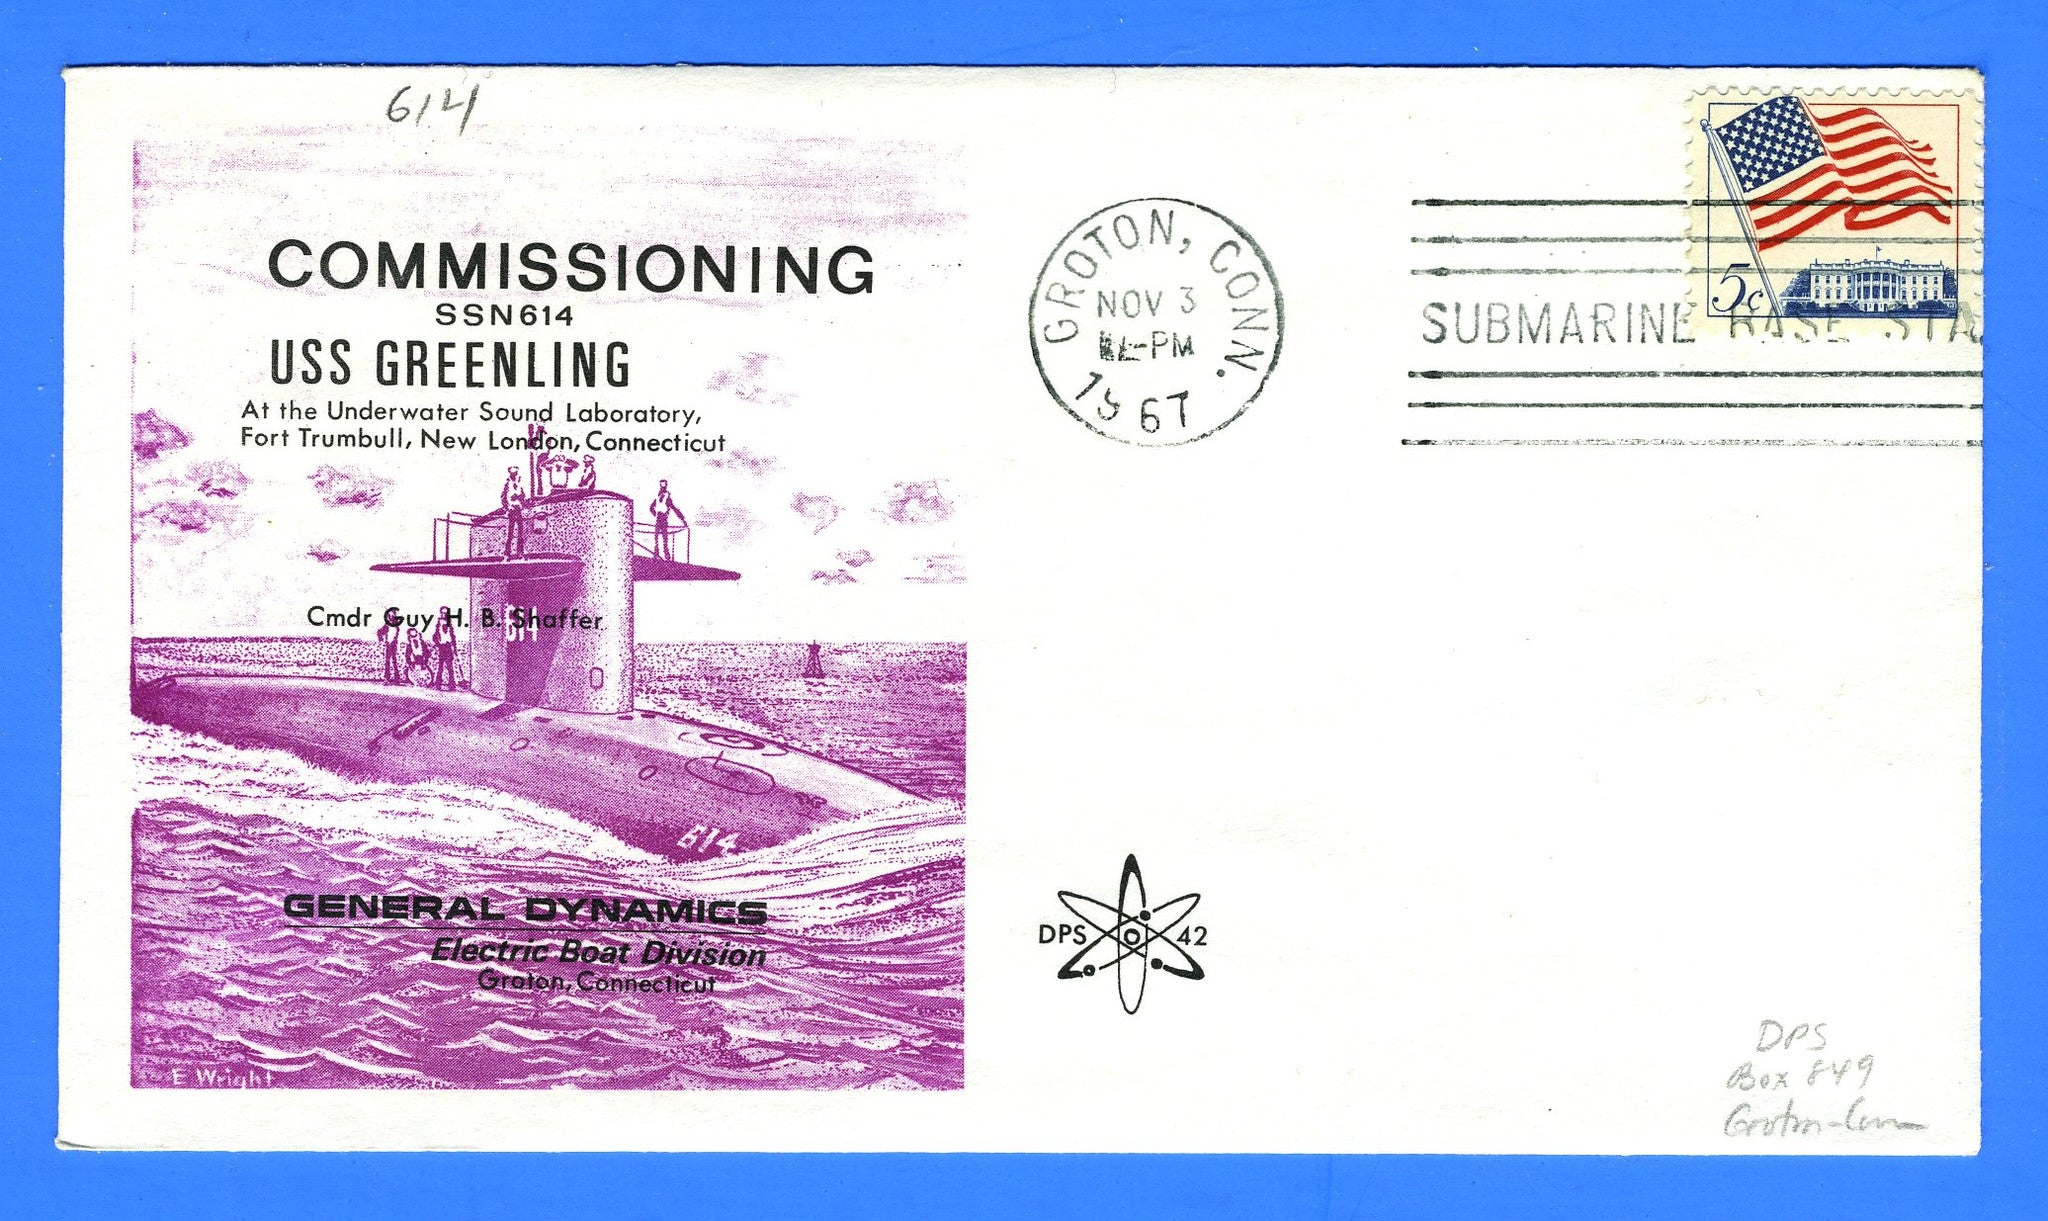 USS Greenling SSN-614 Commissioning November 3, 1967